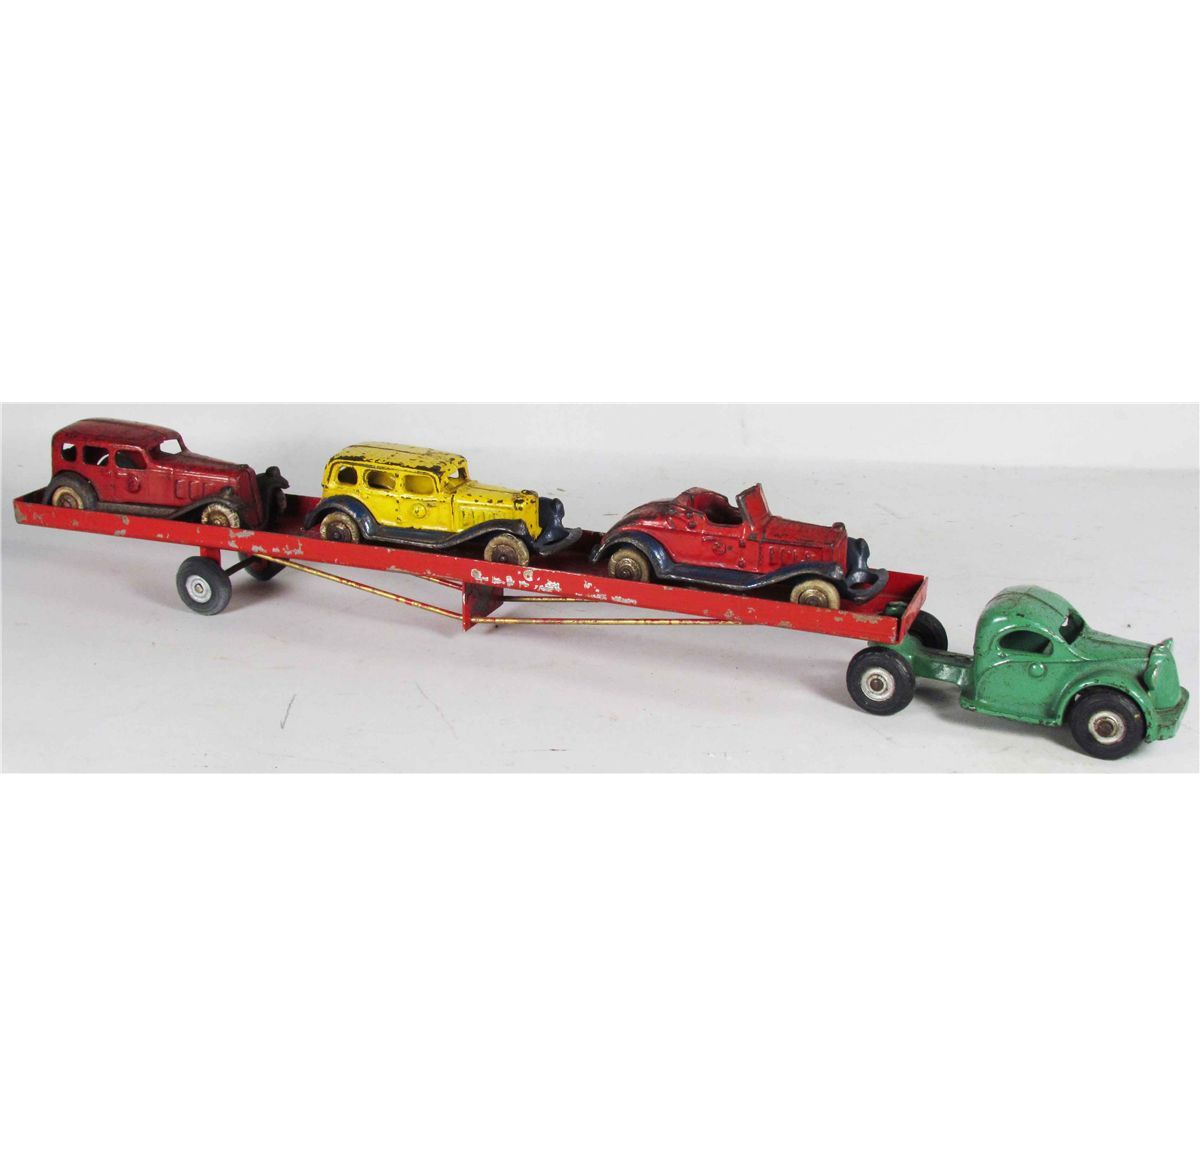 Arcade toy co cast iron car hauler green cab with red